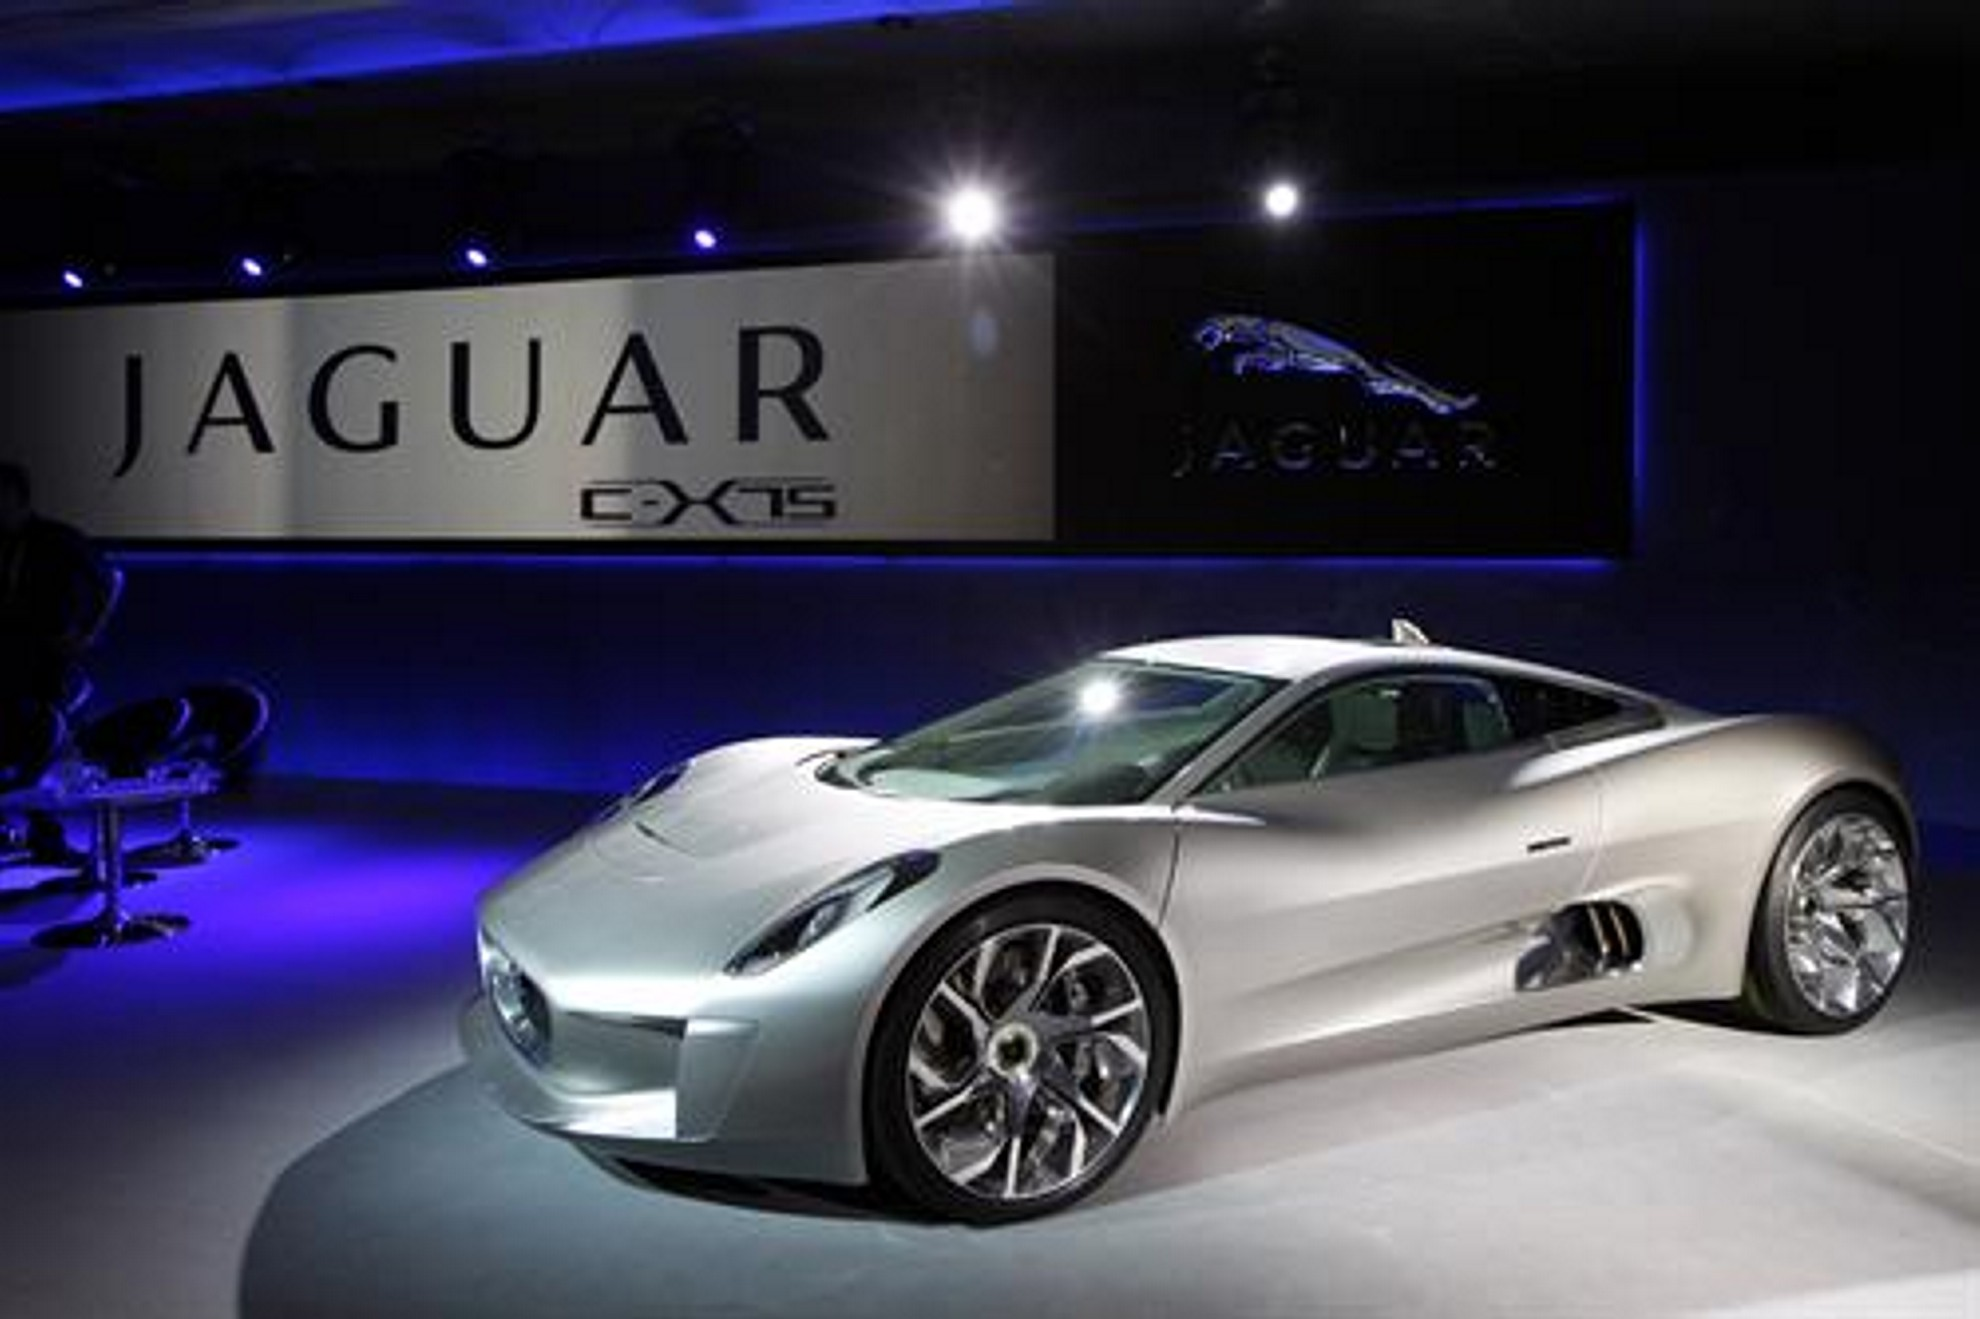 Jaguar Unveiled The C X75 Concept, Which Has Been Provided By Jaguar Cars,  In 2010 And Has Marked The Beginning Of A New Chapter In Innovation And ...